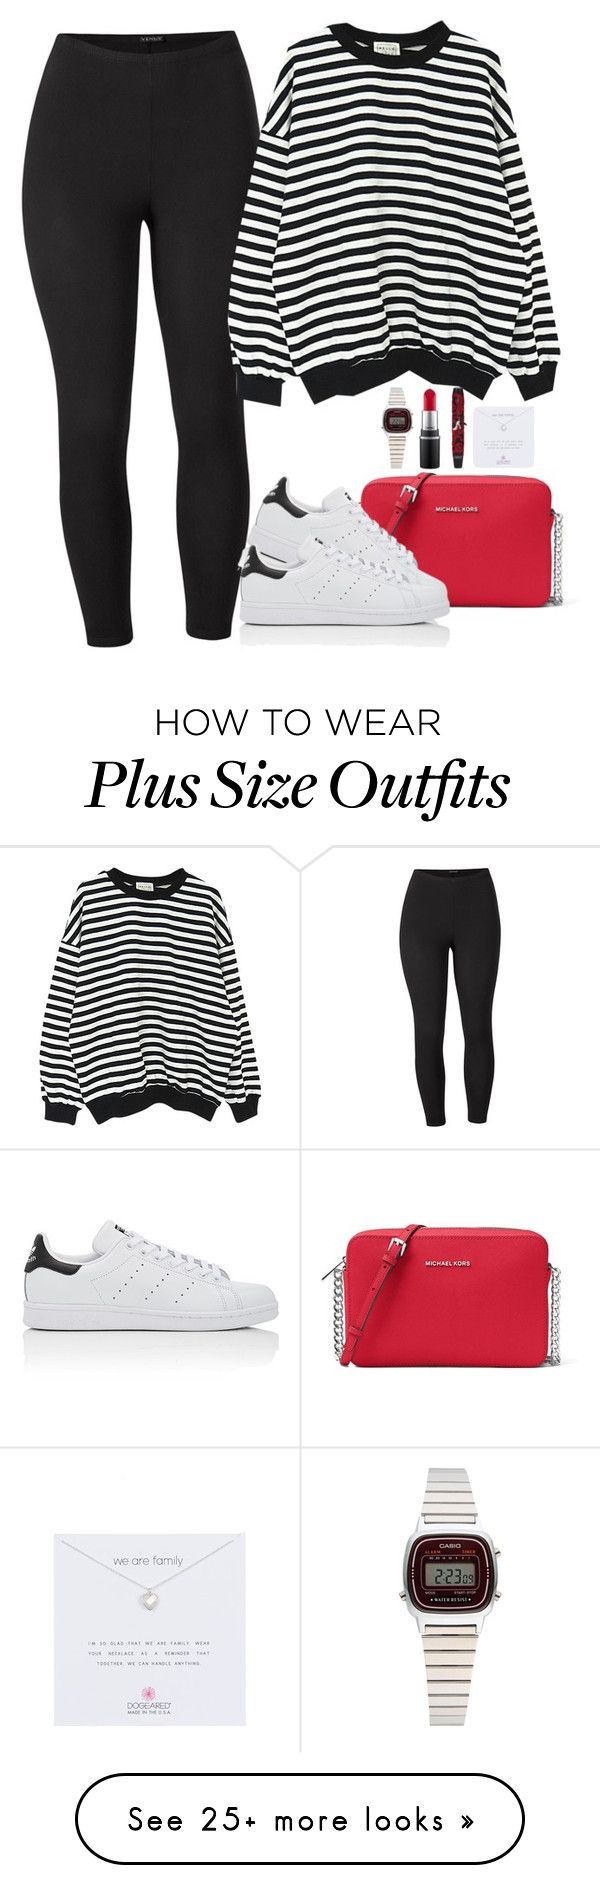 """""""Untitled #1169"""" by karlamichell on Polyvore featuring MICHAEL Michael Kors, Venus, adidas, WithChic, Casio, MAC Cosmetics, Physicians Formula, Dogeared and plus size clothing"""